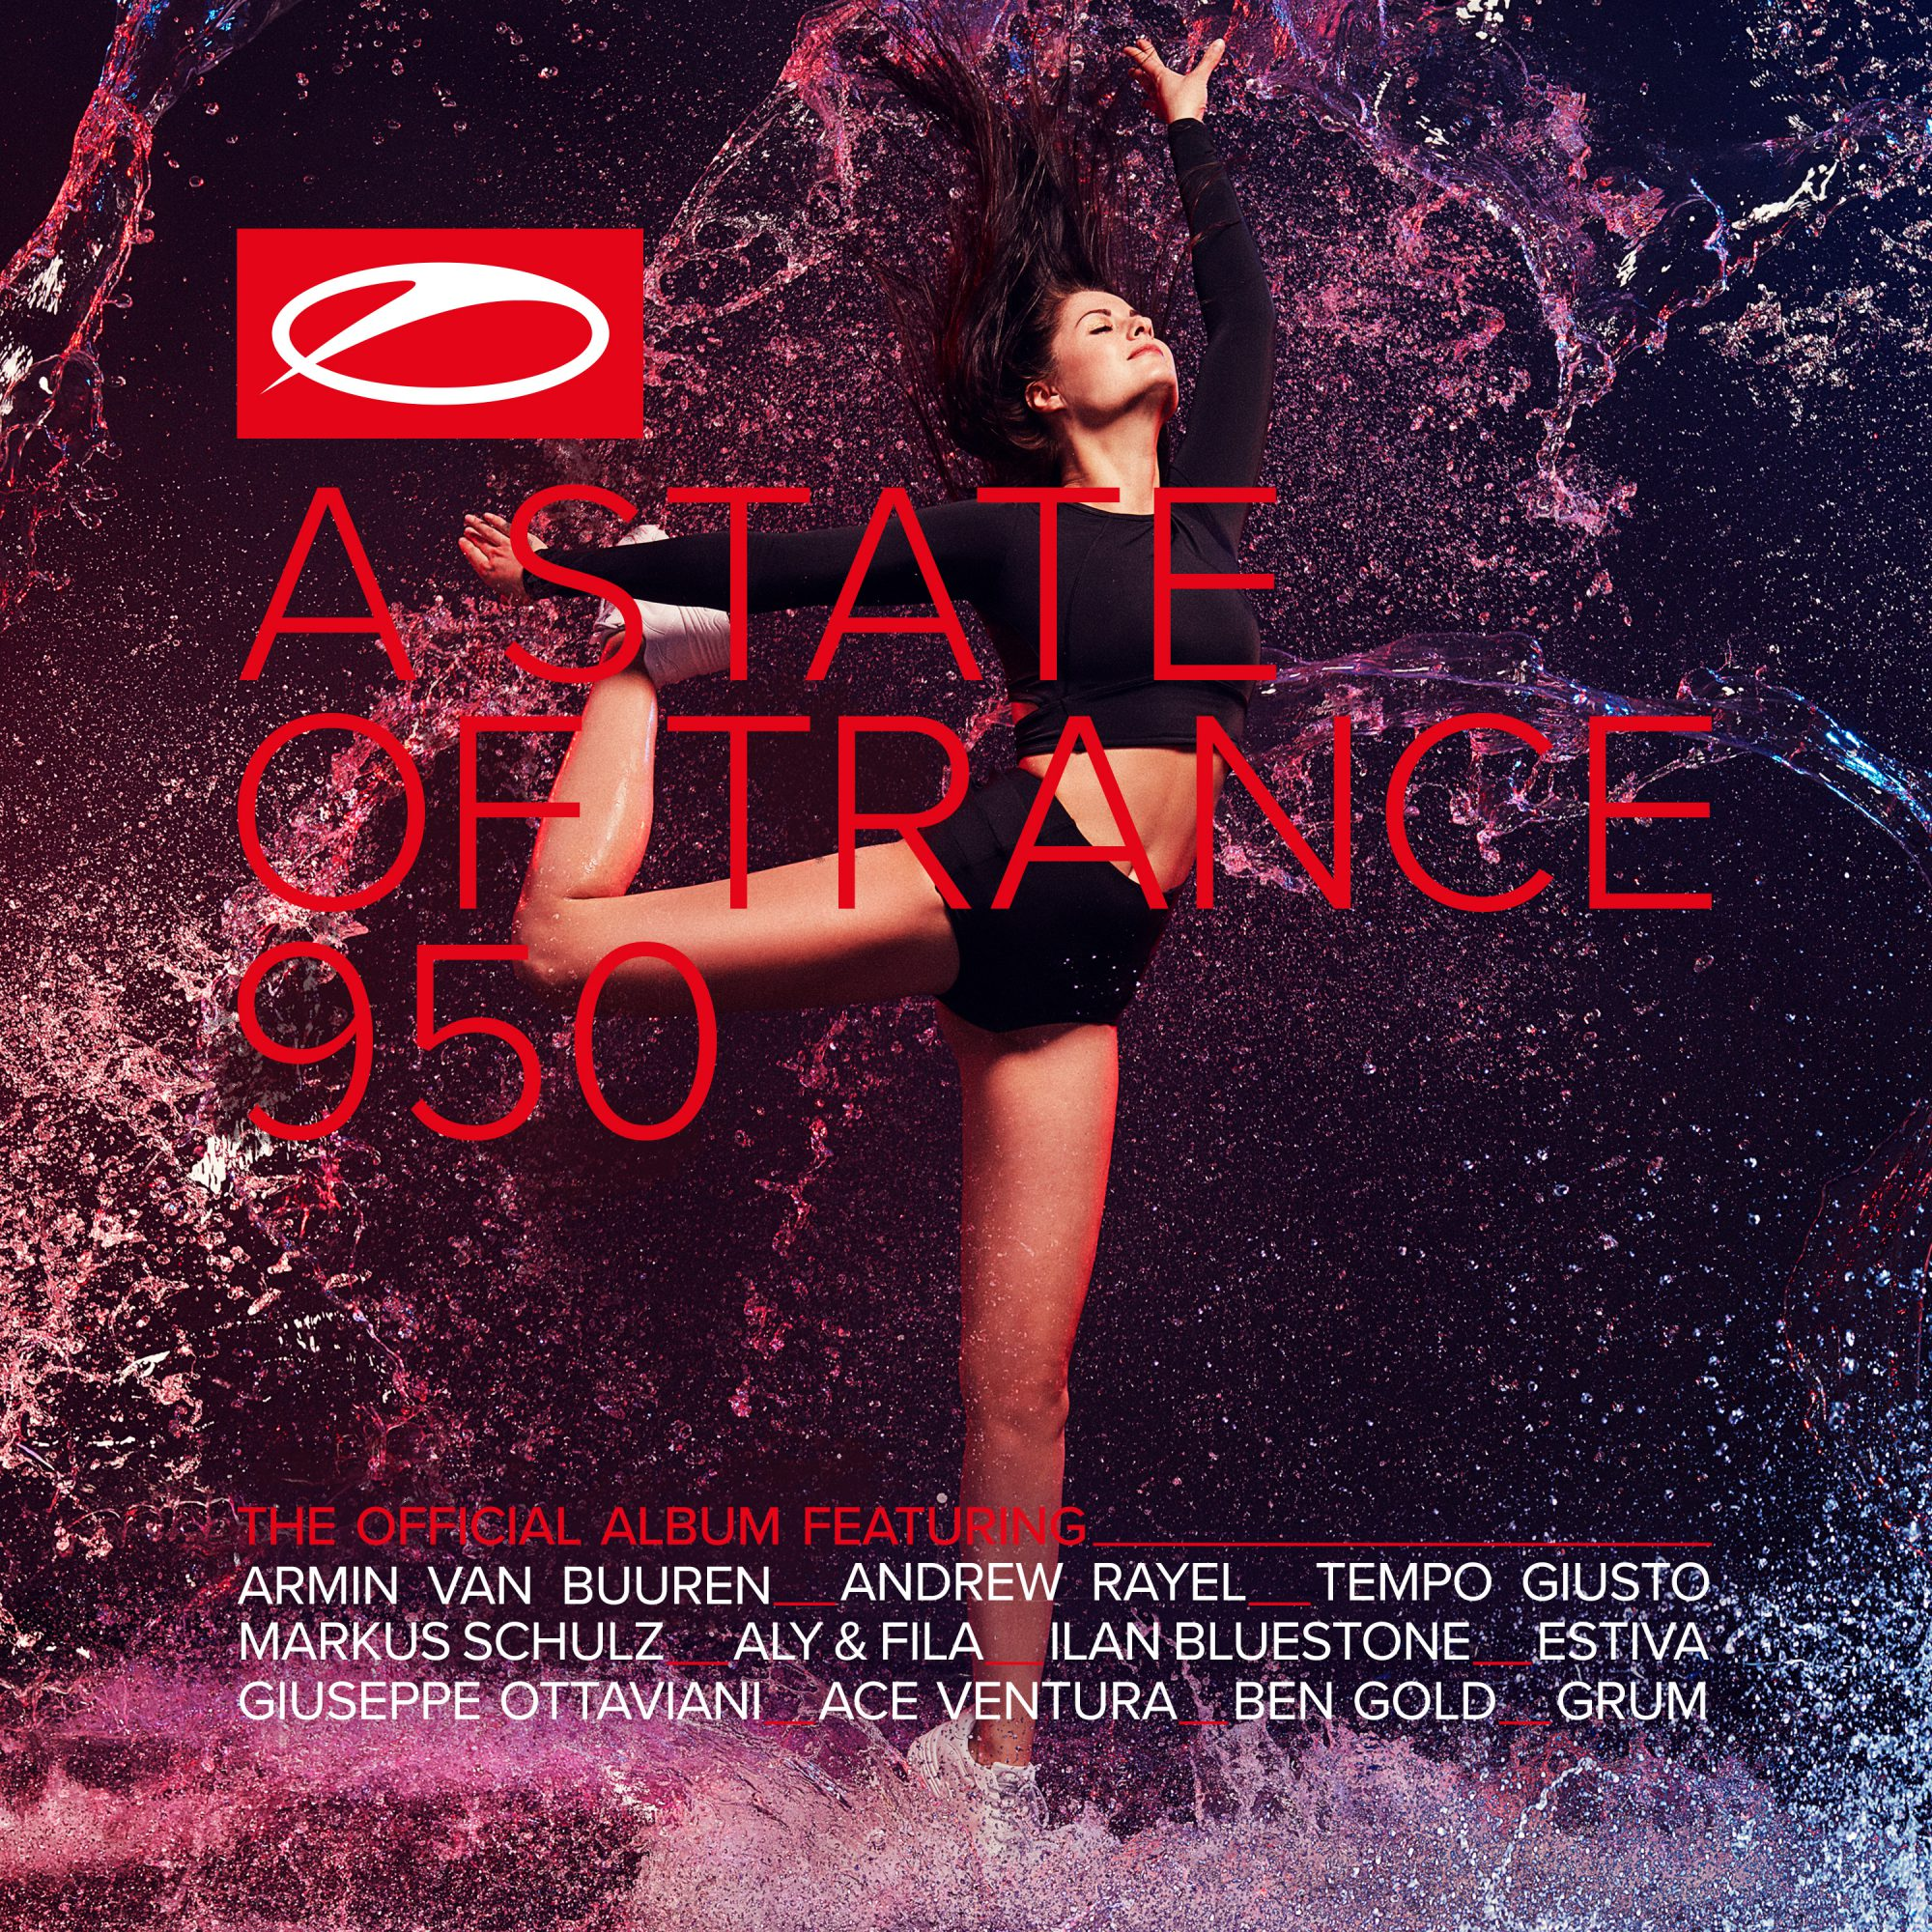 A State Of Trance 950 Cover Art